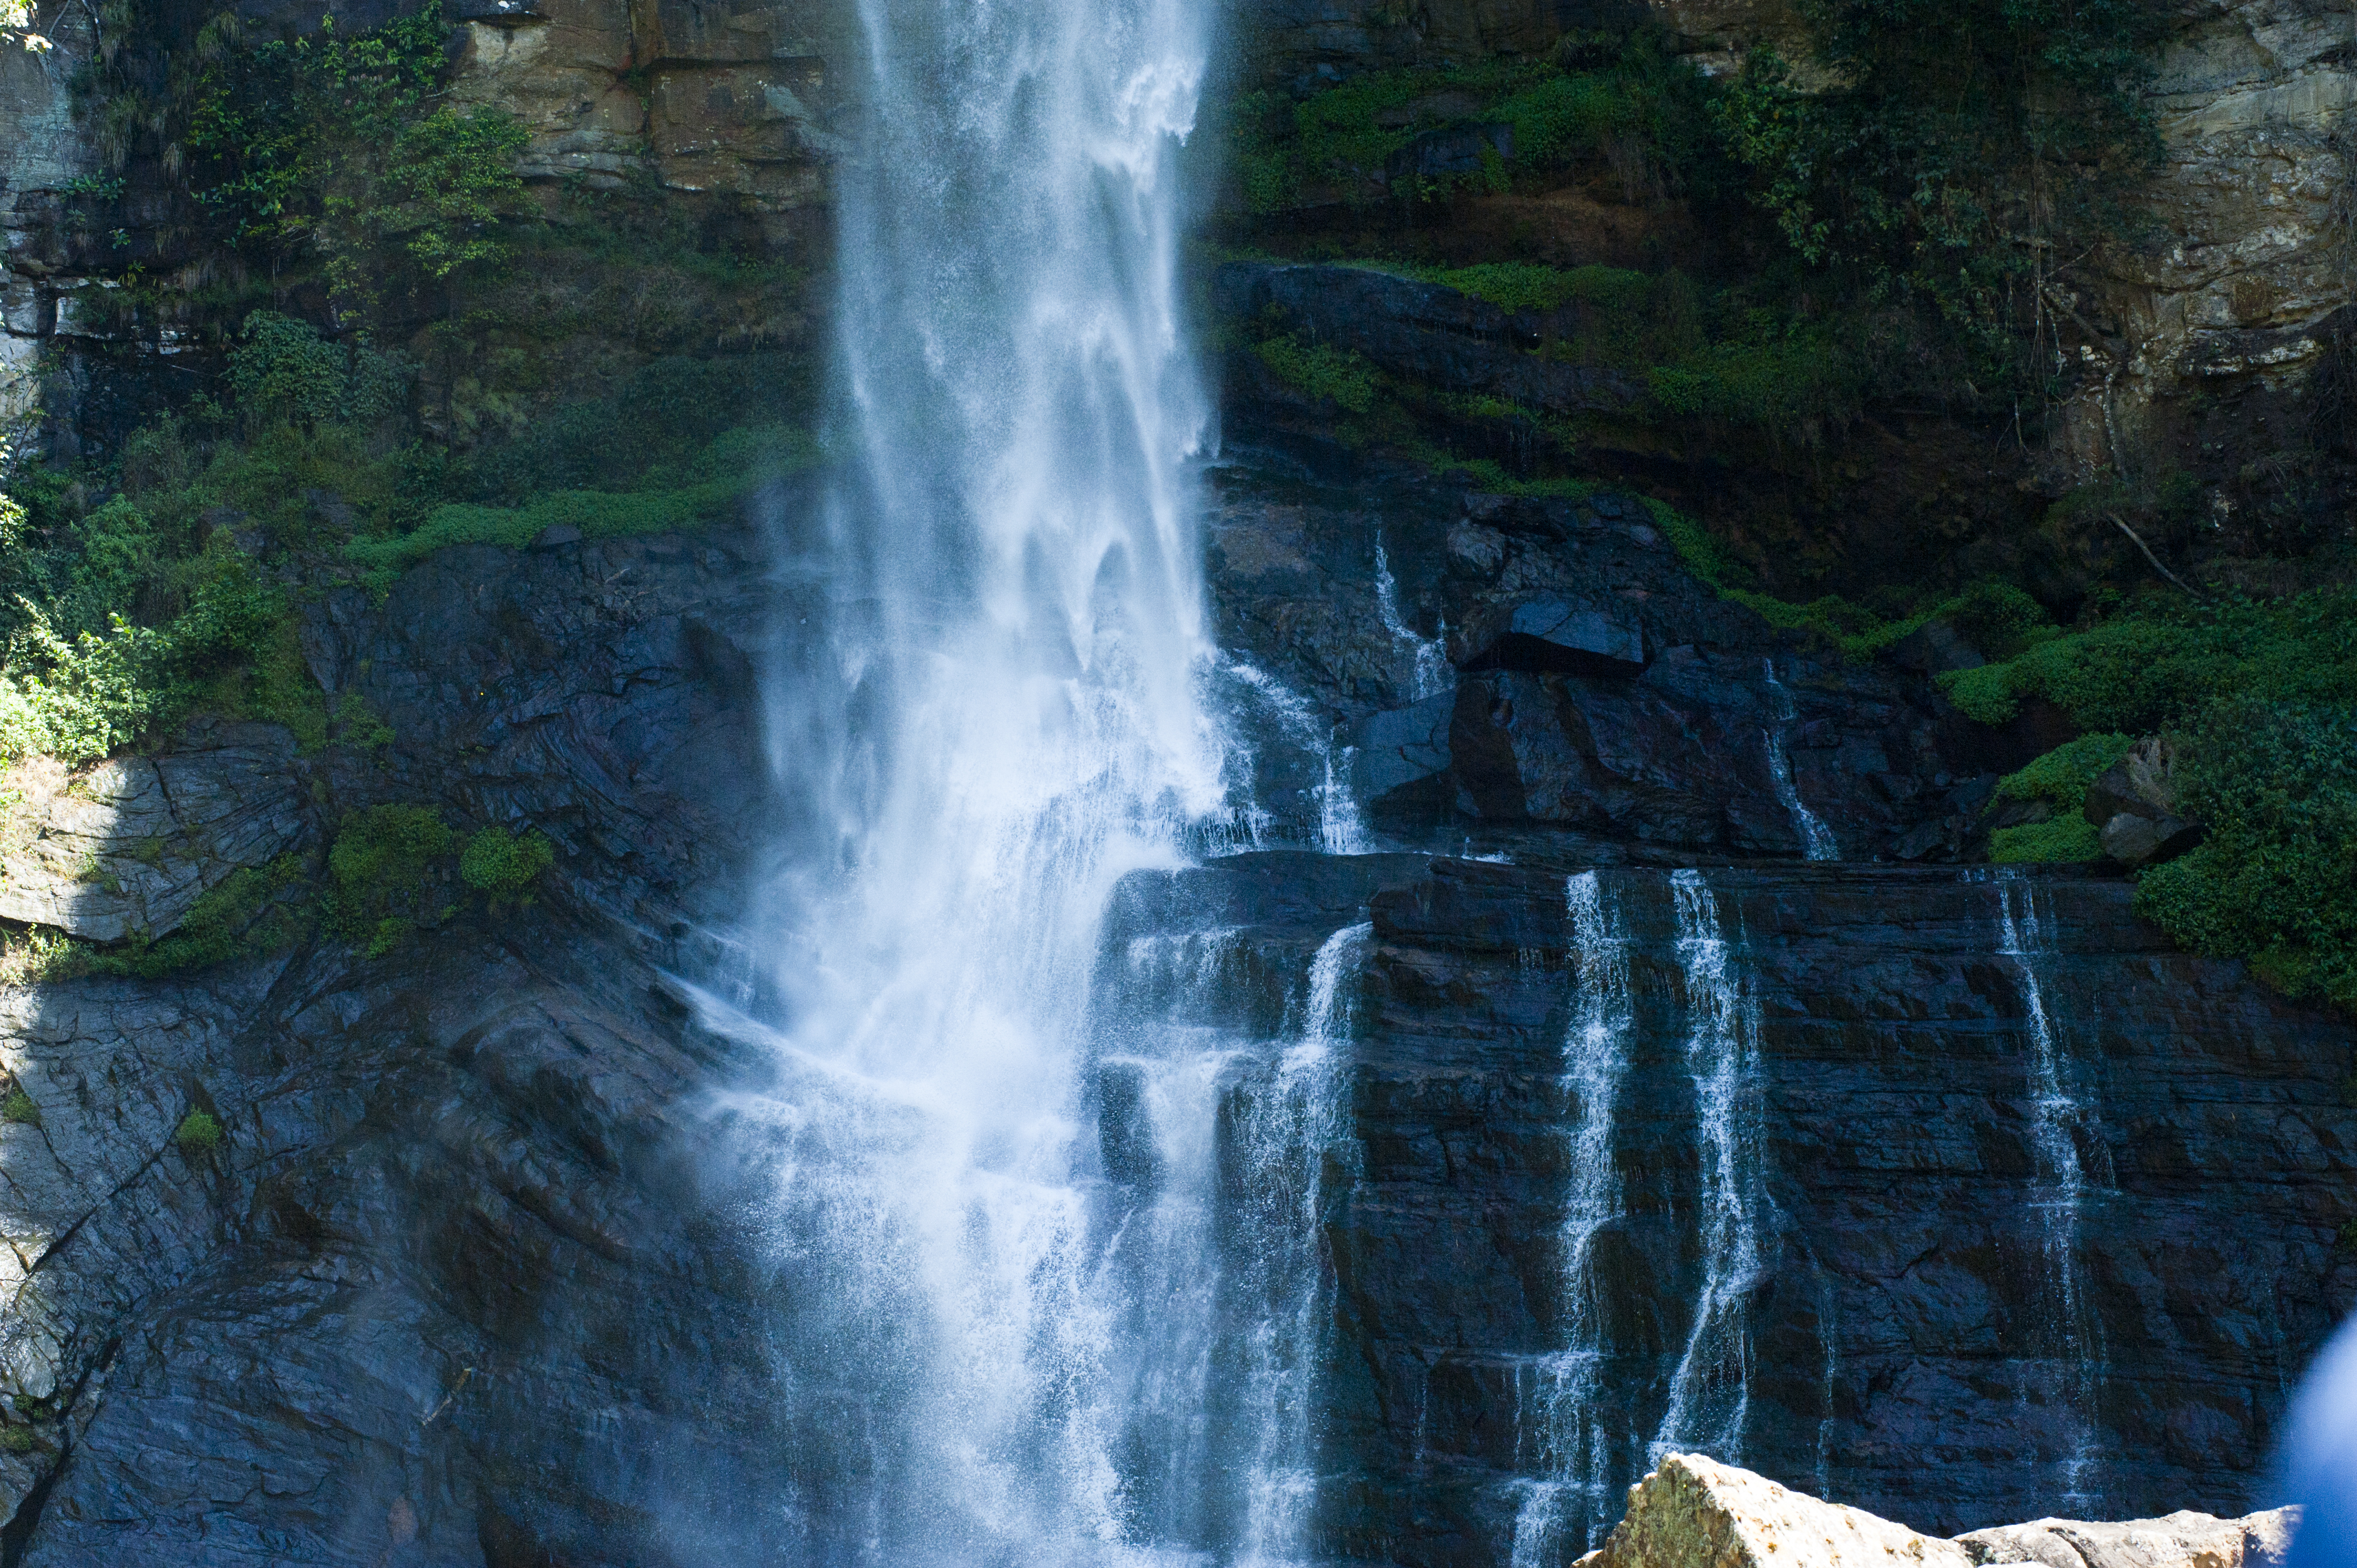 Best Iphone X Wallpaper Landscape Photography Of Waterfall 183 Free Stock Photo